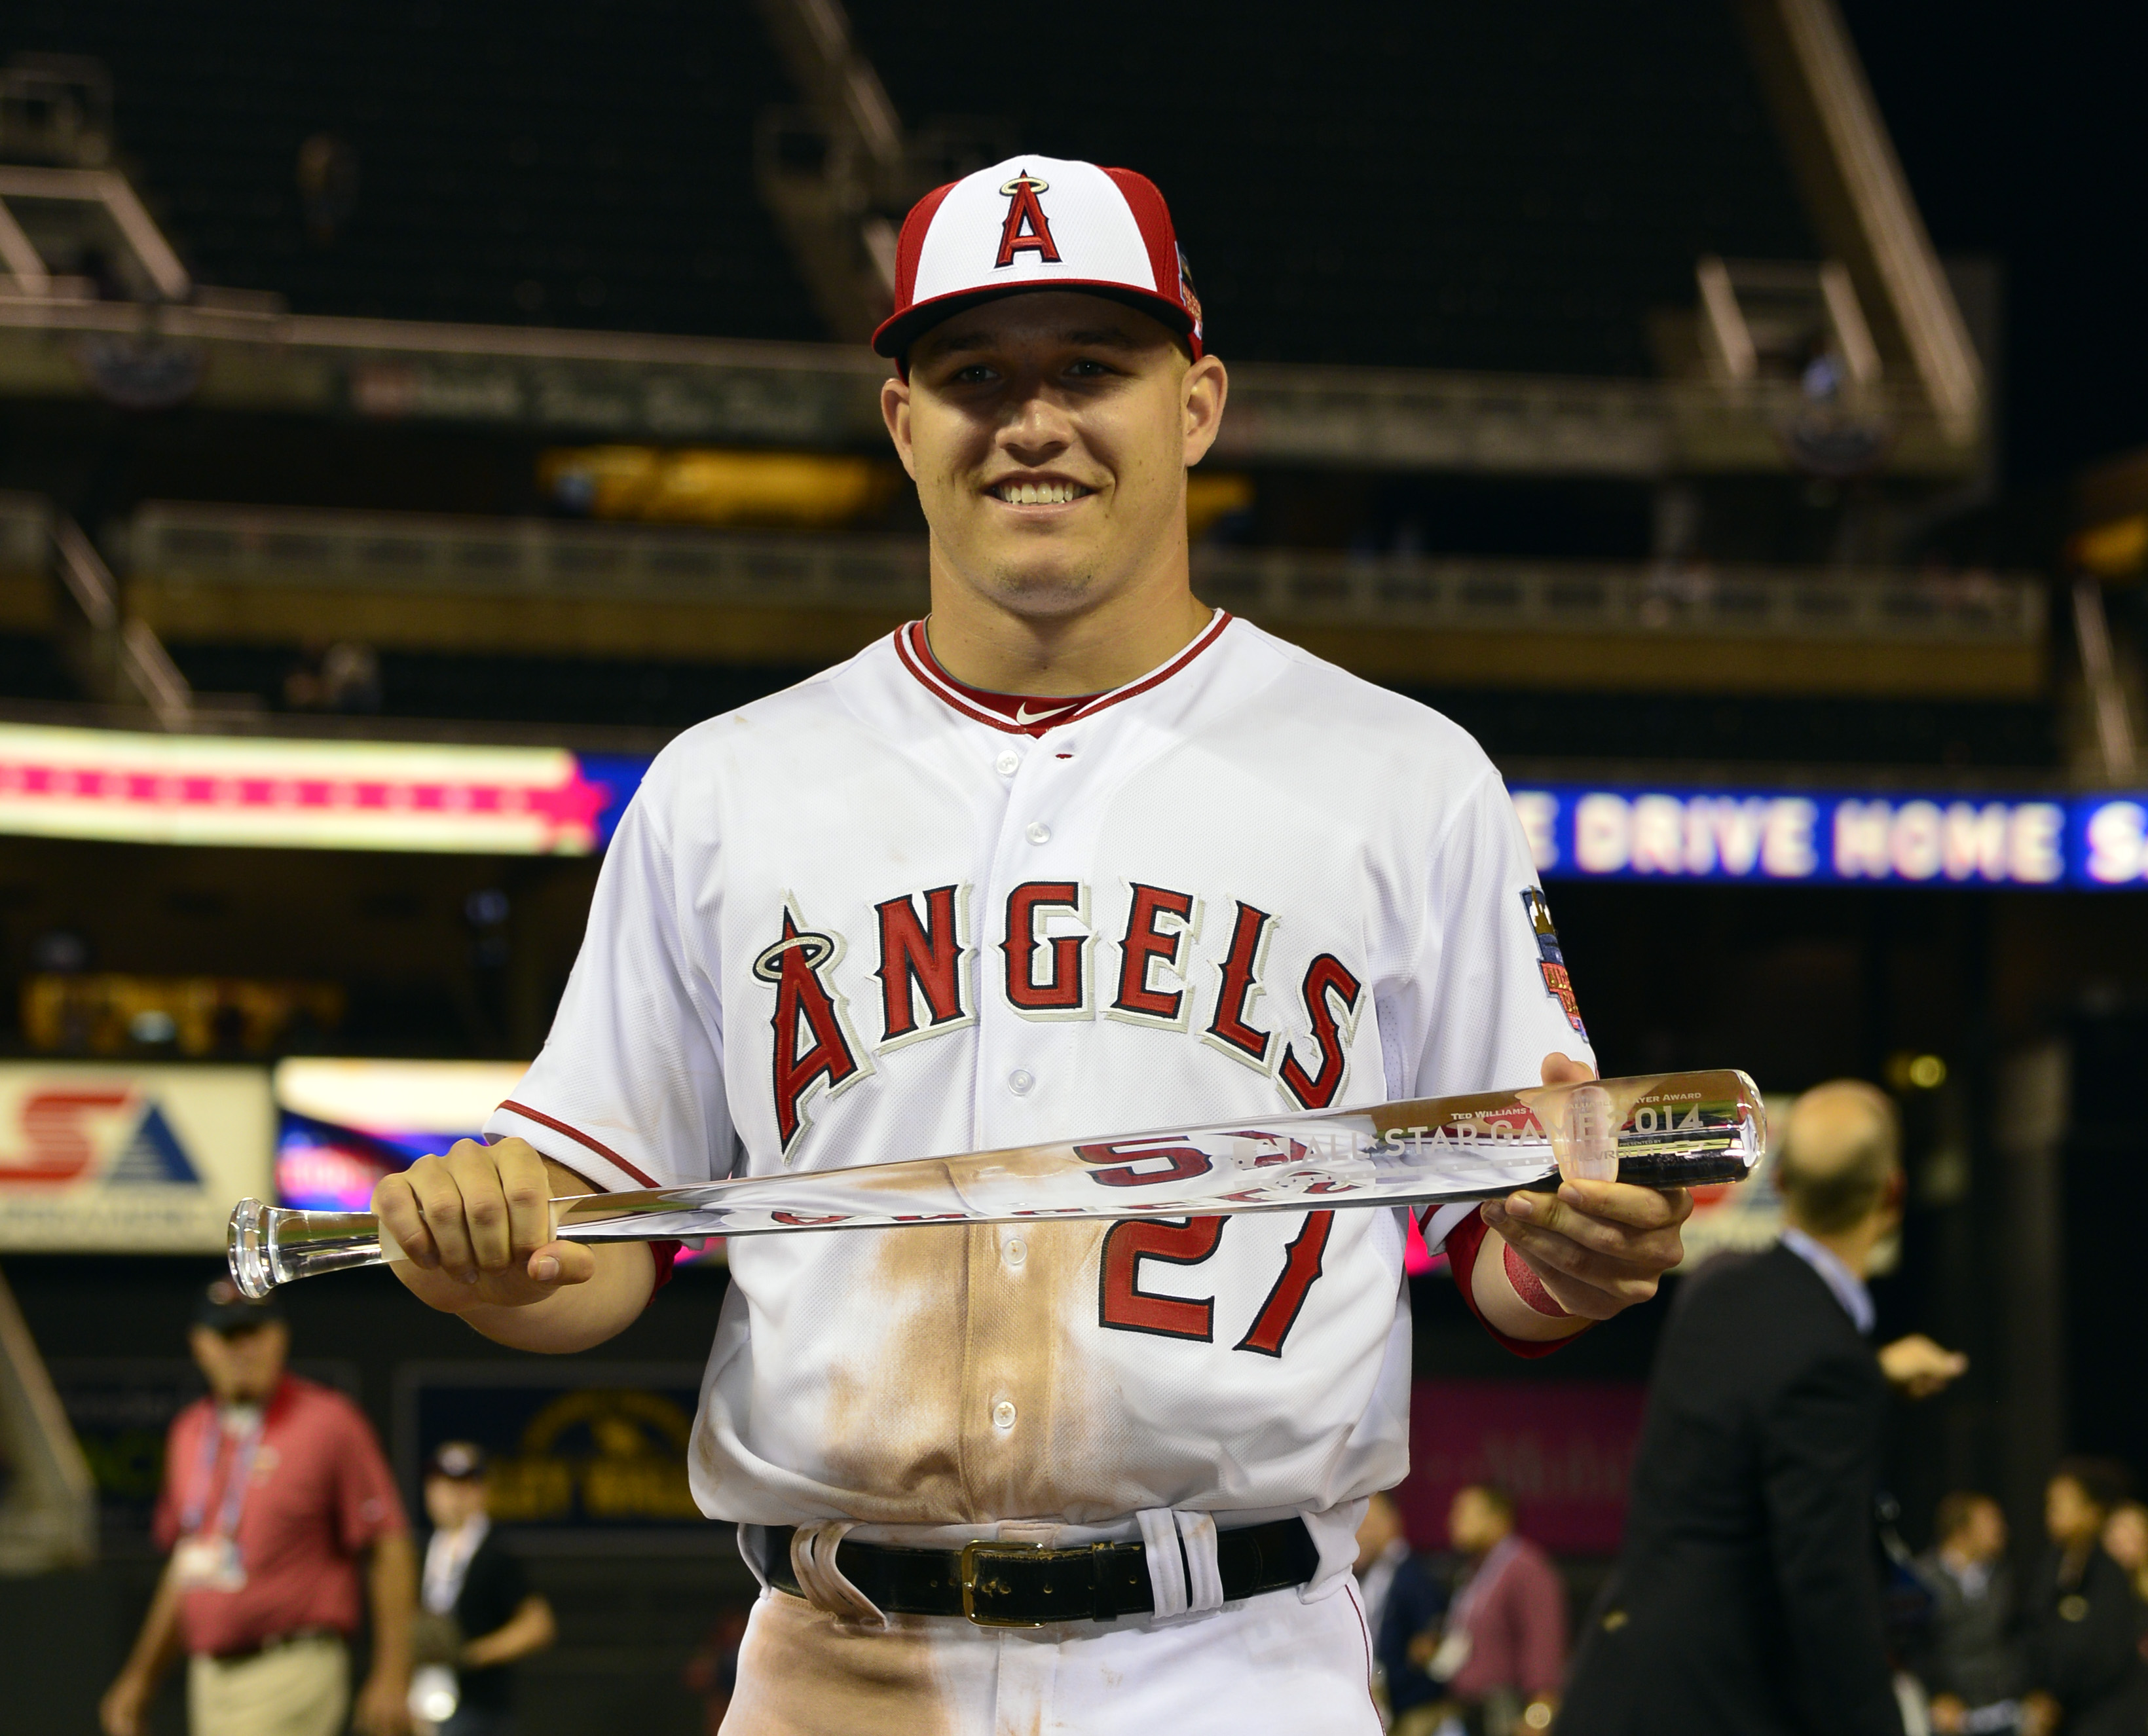 Mike Trout of the Los Angeles Angels poses with the All-Star Game MVP trophy. (Scott Rovak, USA TODAY Sports)